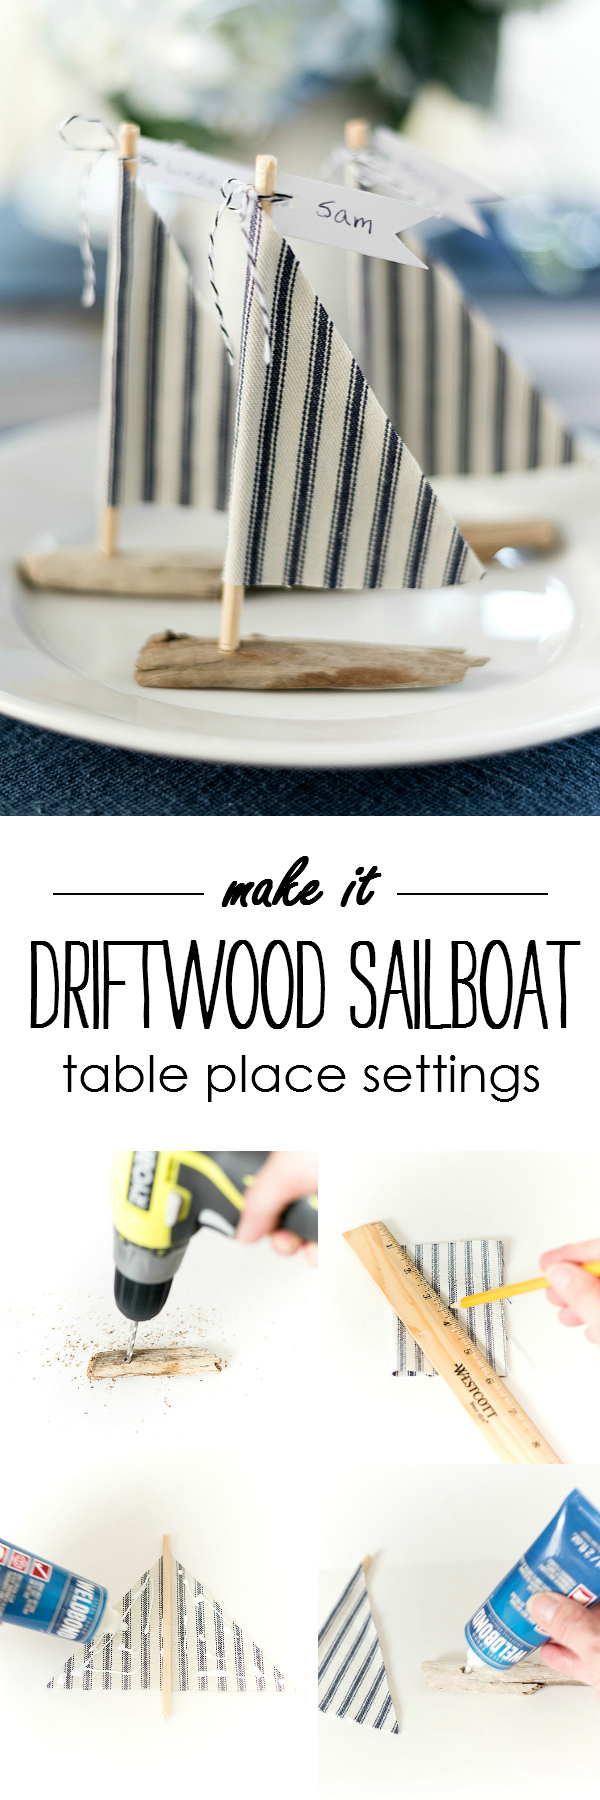 How to Make Driftwood Sailboat Place Setting DIY - Easy Nautical Place Setting Idea with Driftwood Sailboats @It All Started With Paint